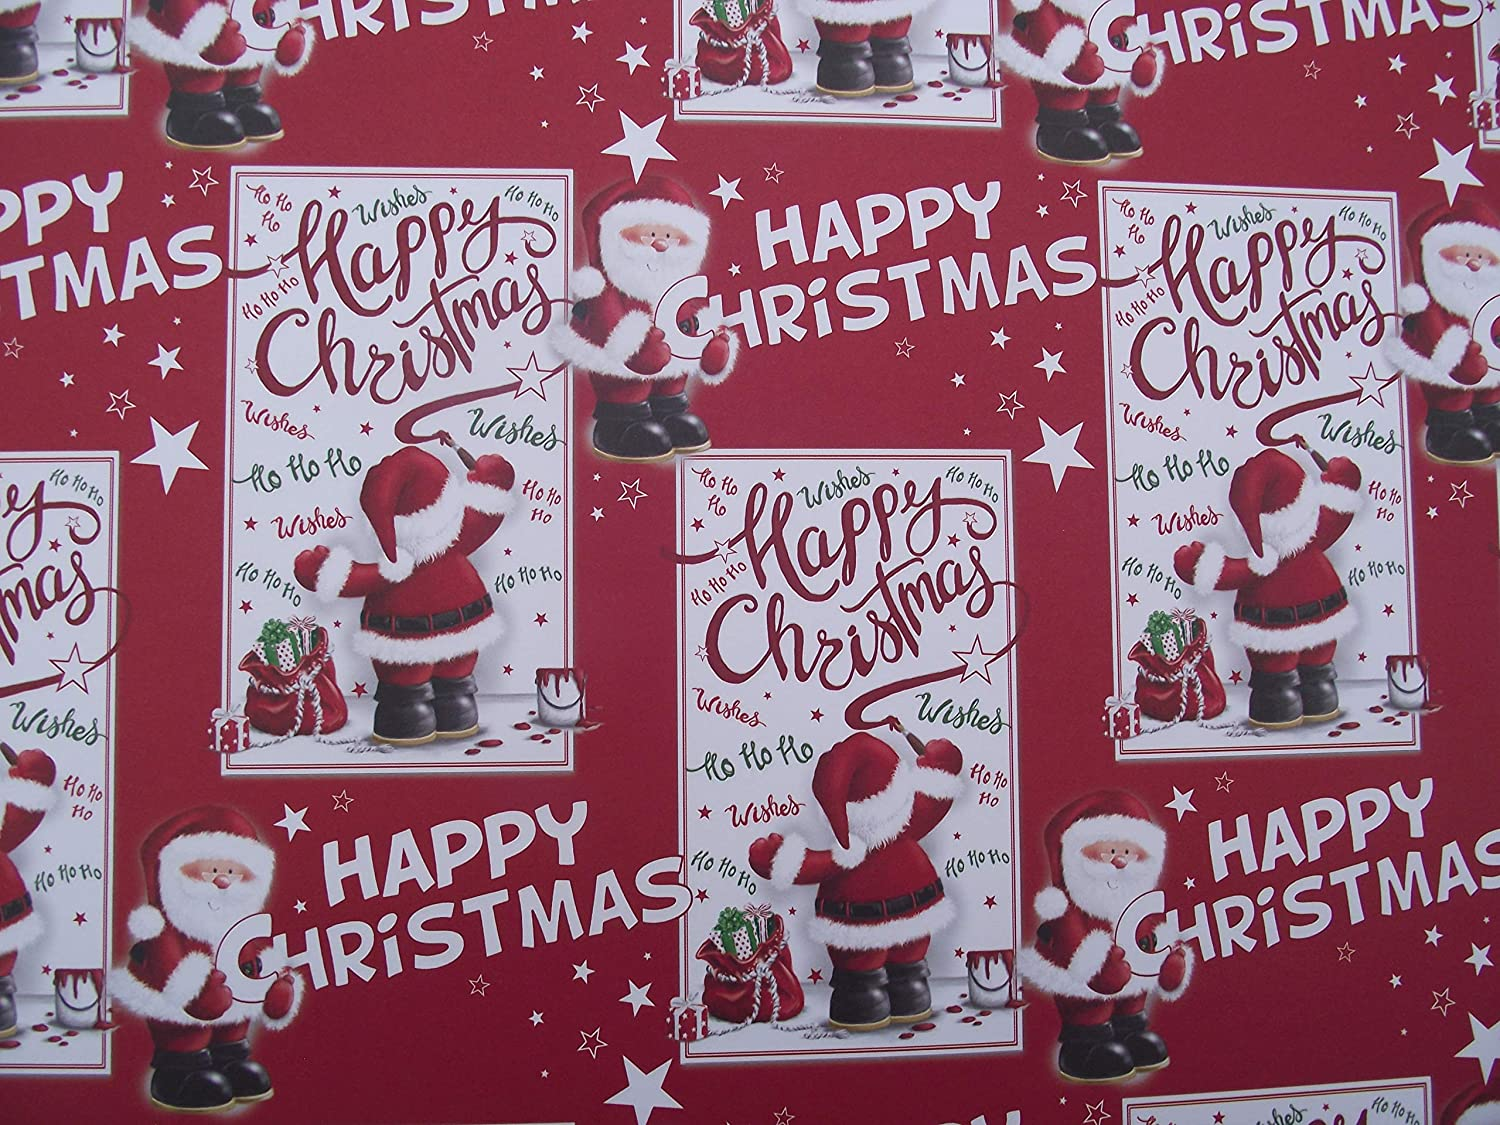 20 Sheets of Childrens Christmas Wrapping Paper